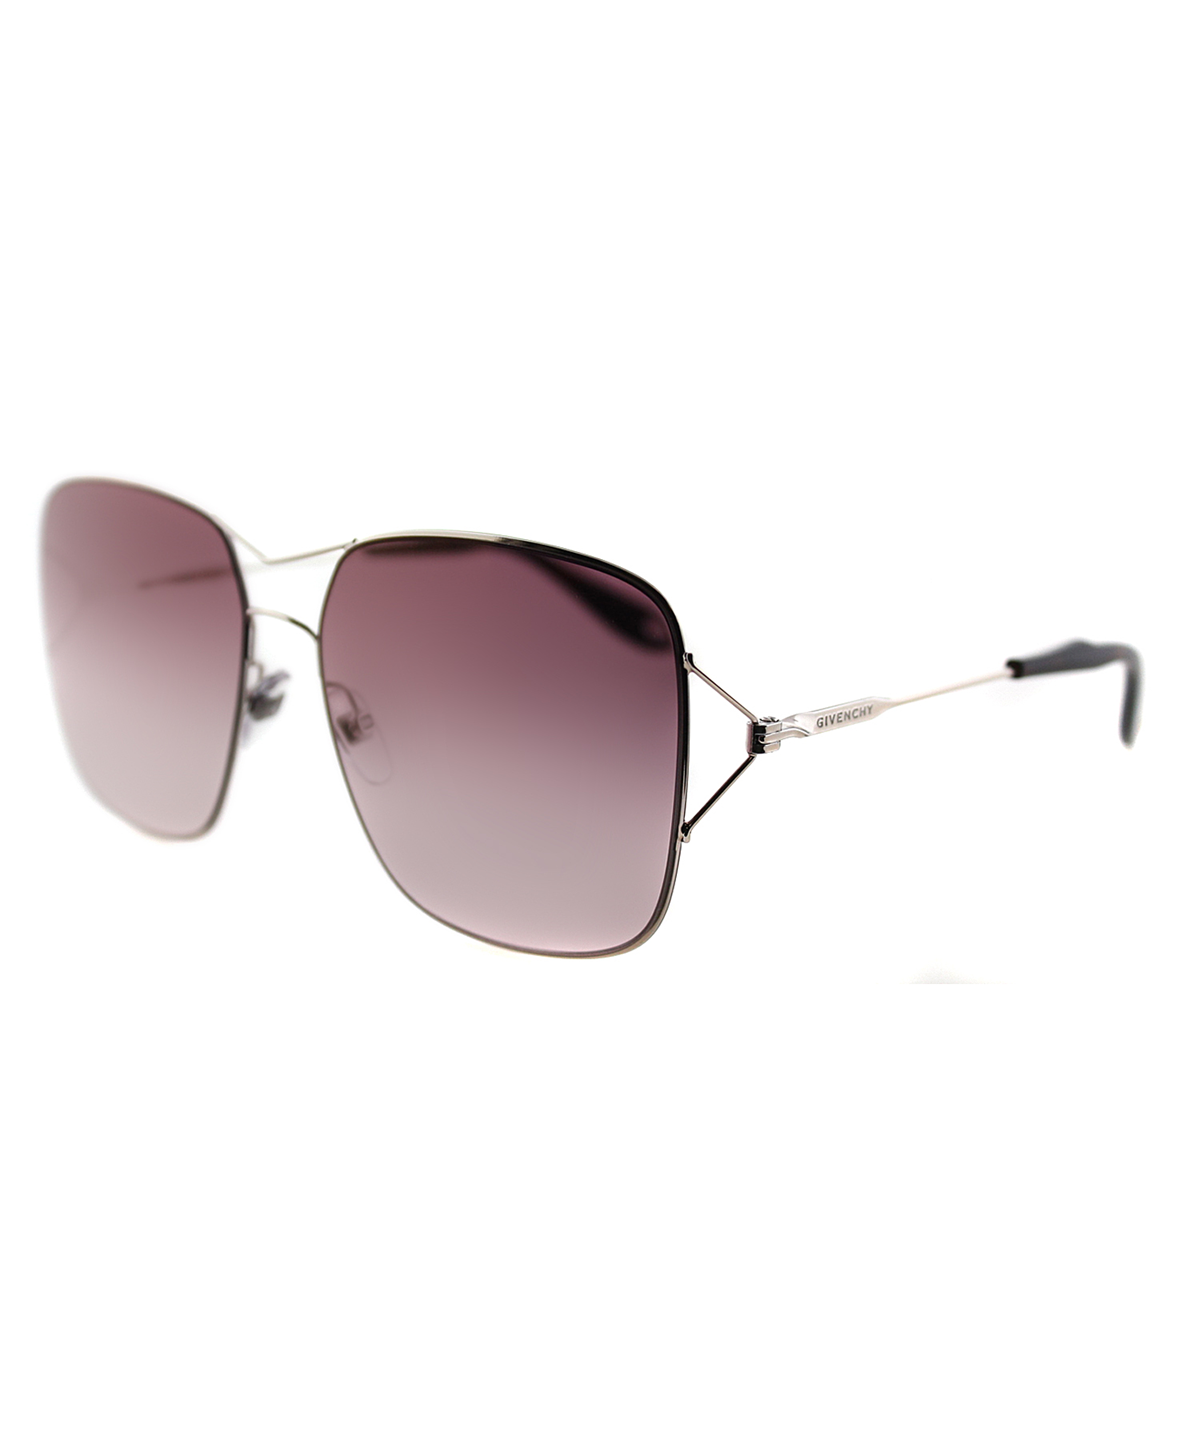 Givenchy Square Metal Sunglasses In Gold Rose